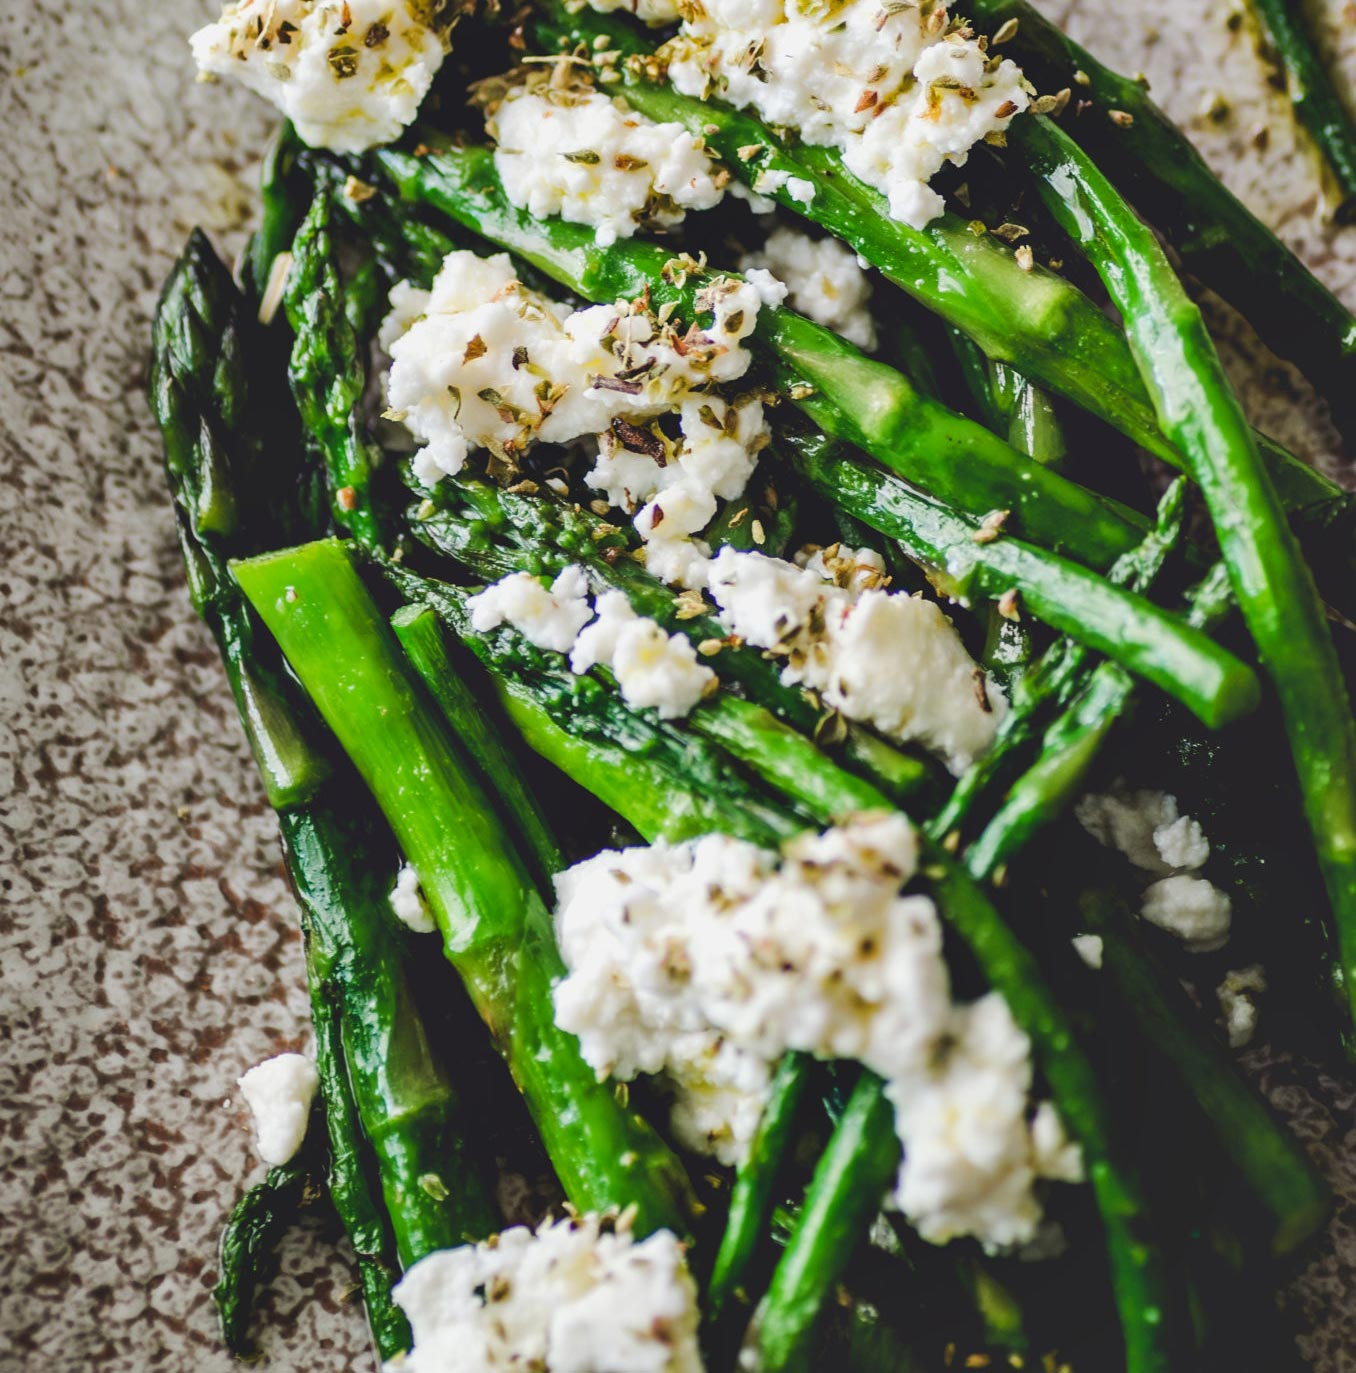 Grilled asparagus with White cheese